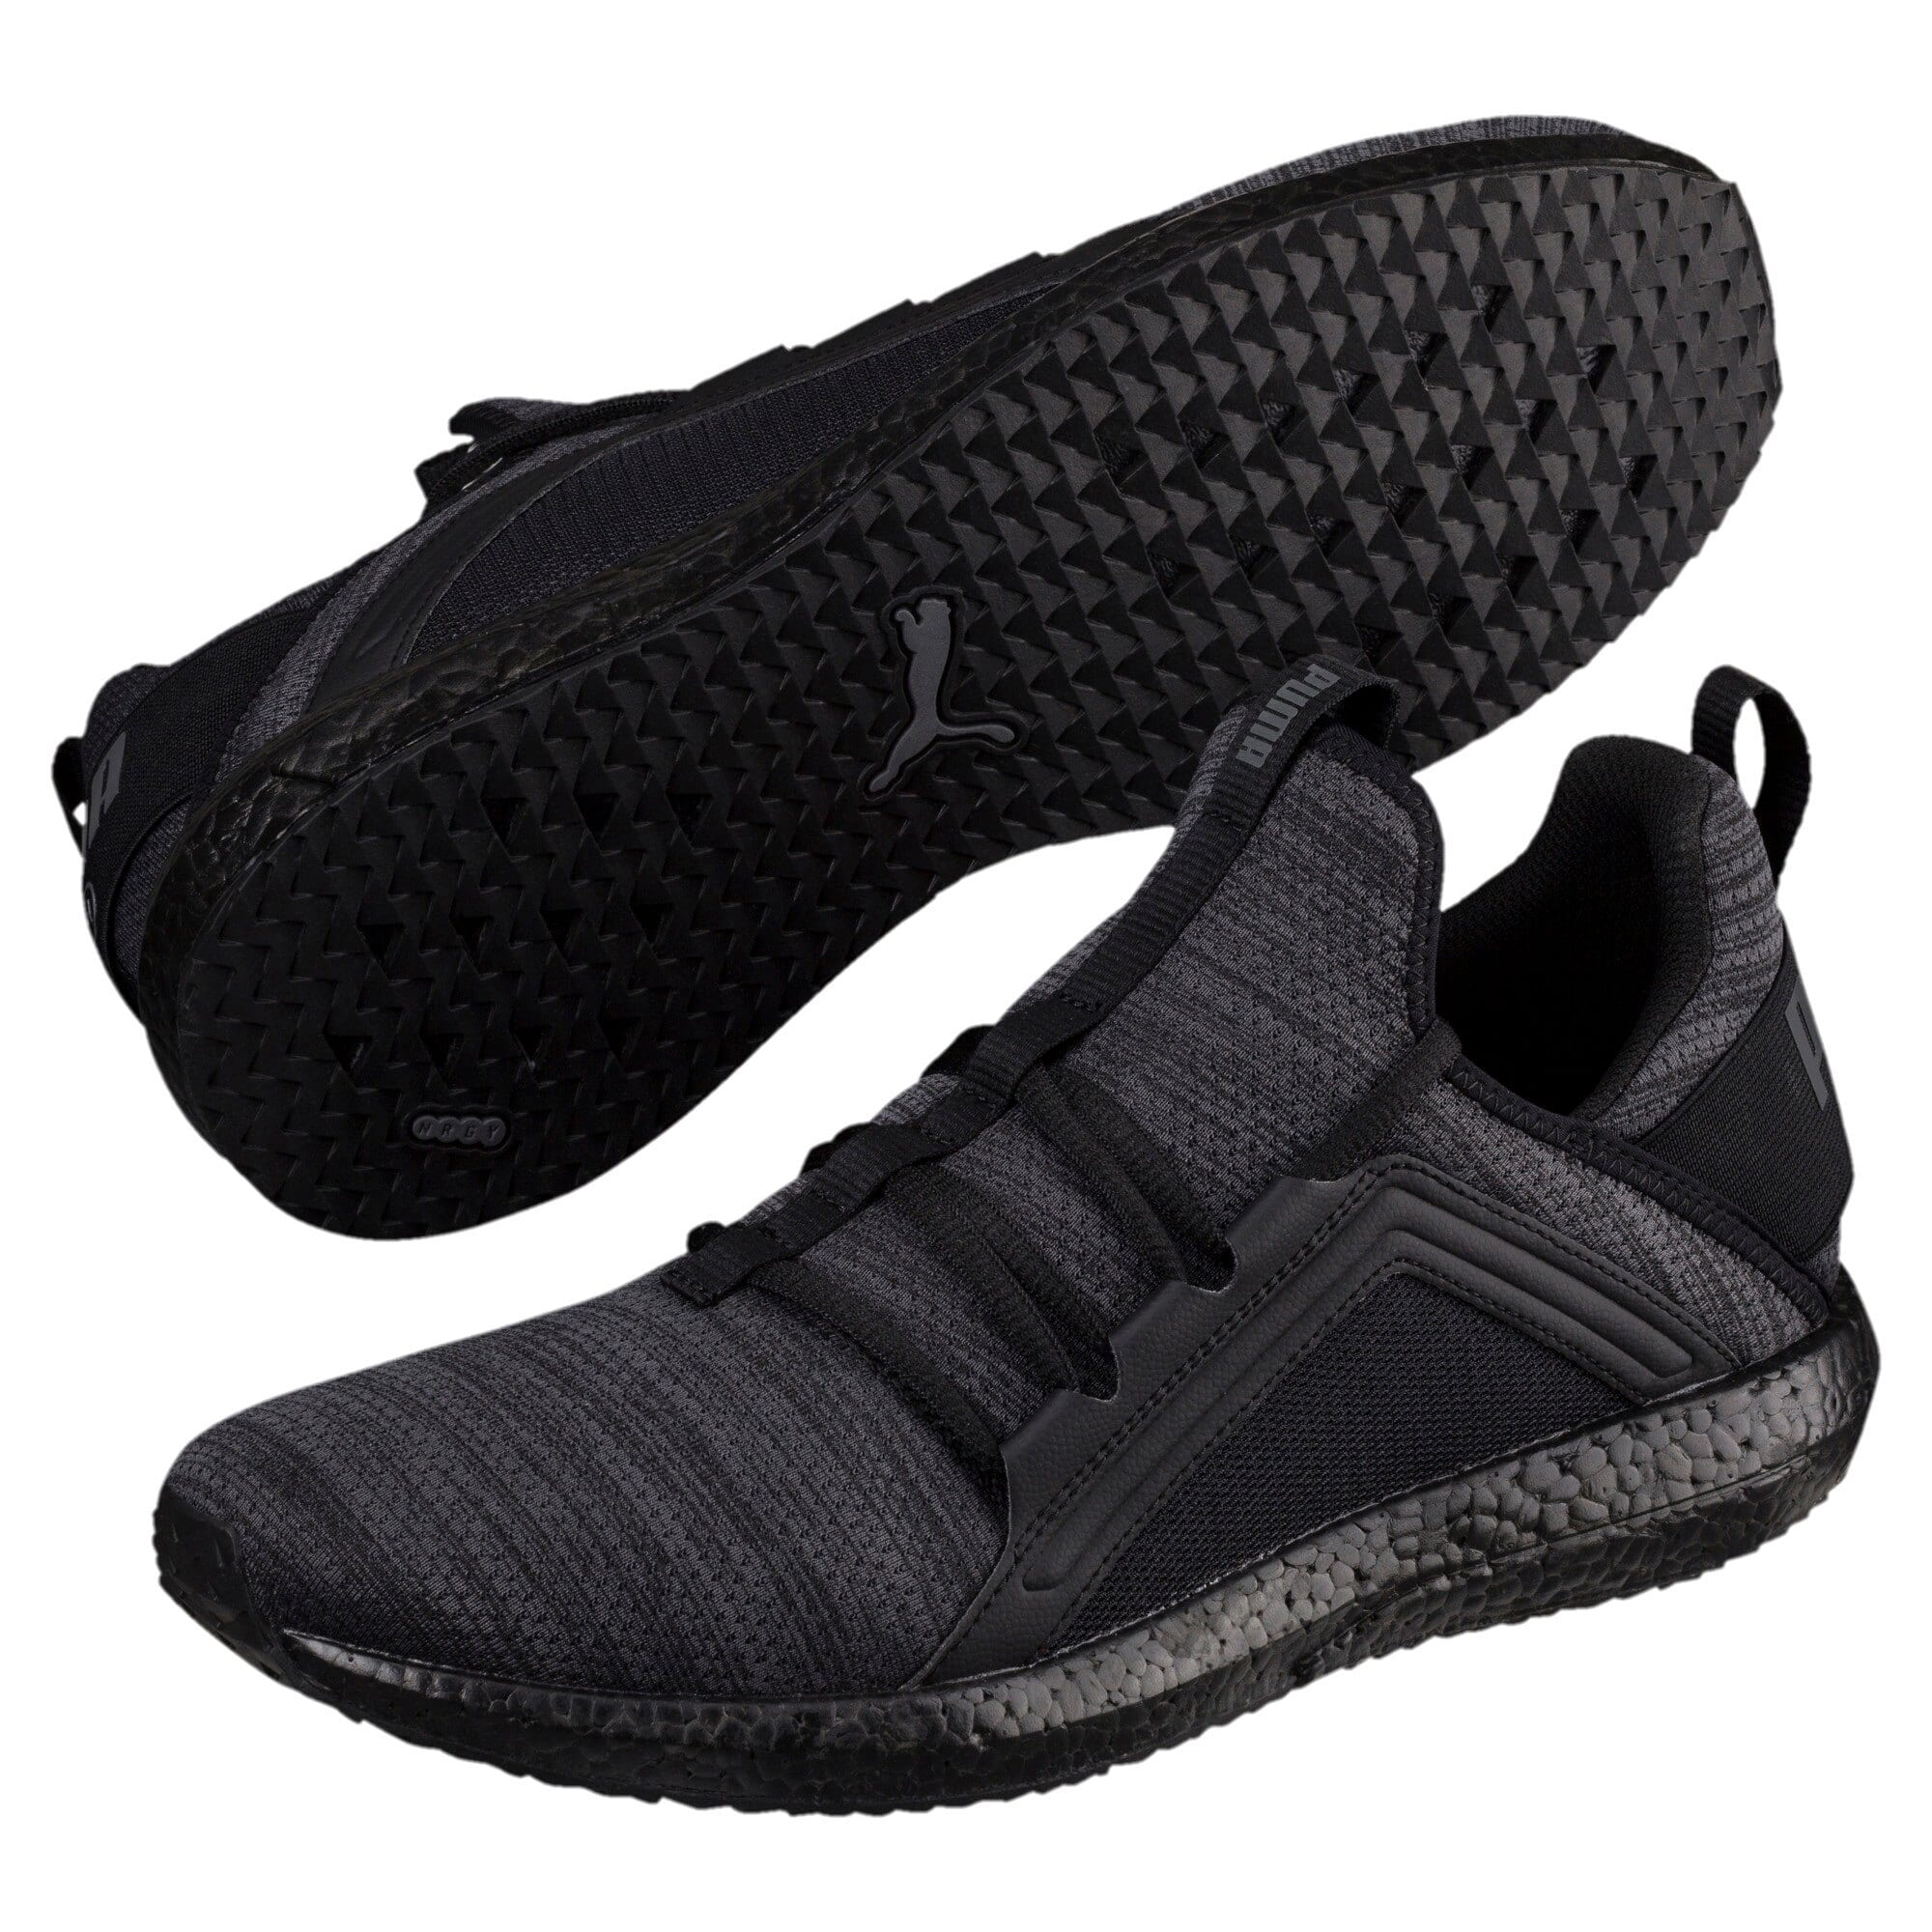 PUMA Mega Nrgy Heather Knit Men's Running Shoes: $31.99 AC + FS (Other Puma Deals Available)